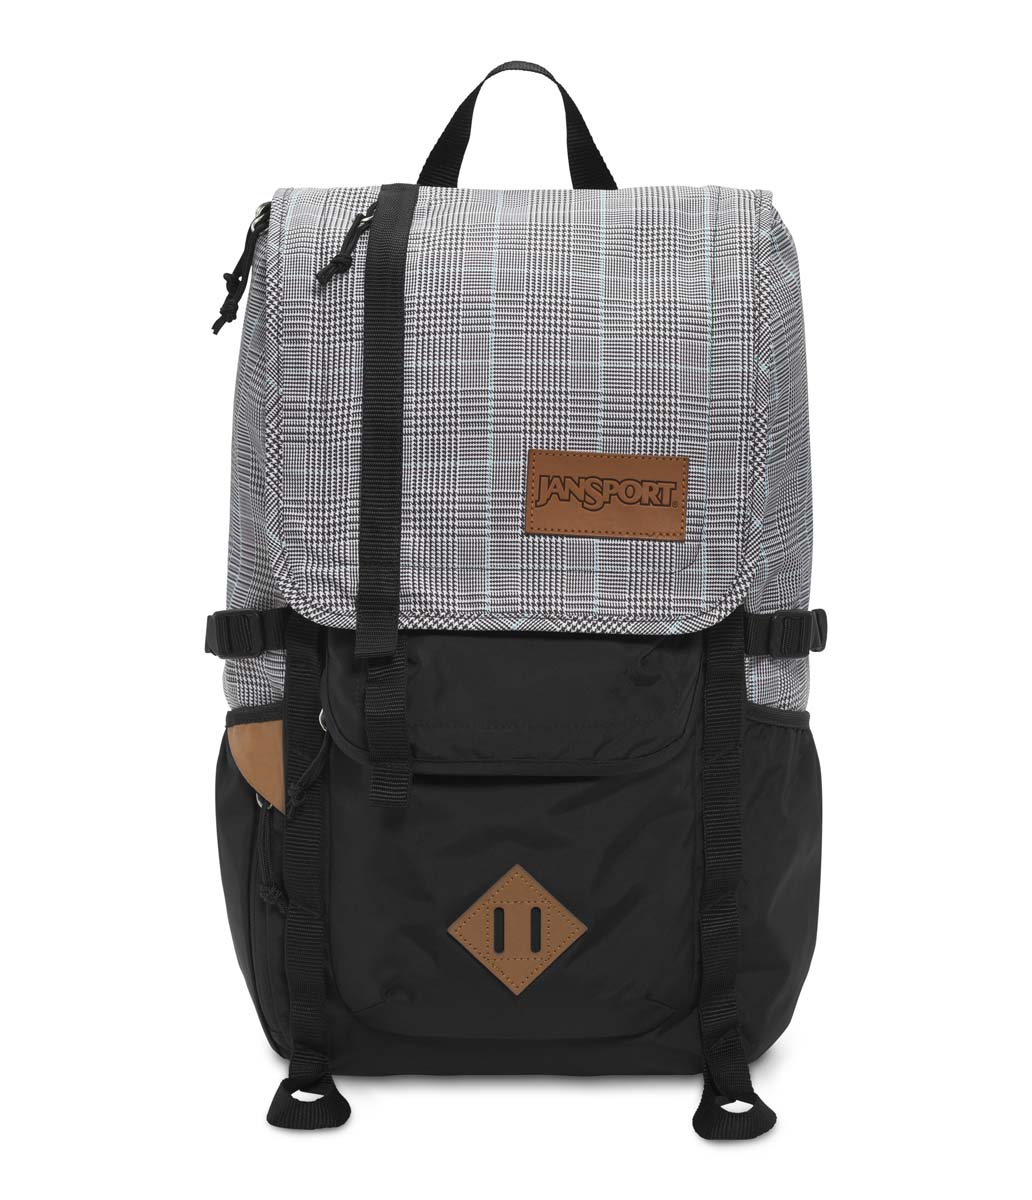 JanSport รุ่น HATCHET SPECIAL EDITION - BLACK/WHITE SUITED PLAID